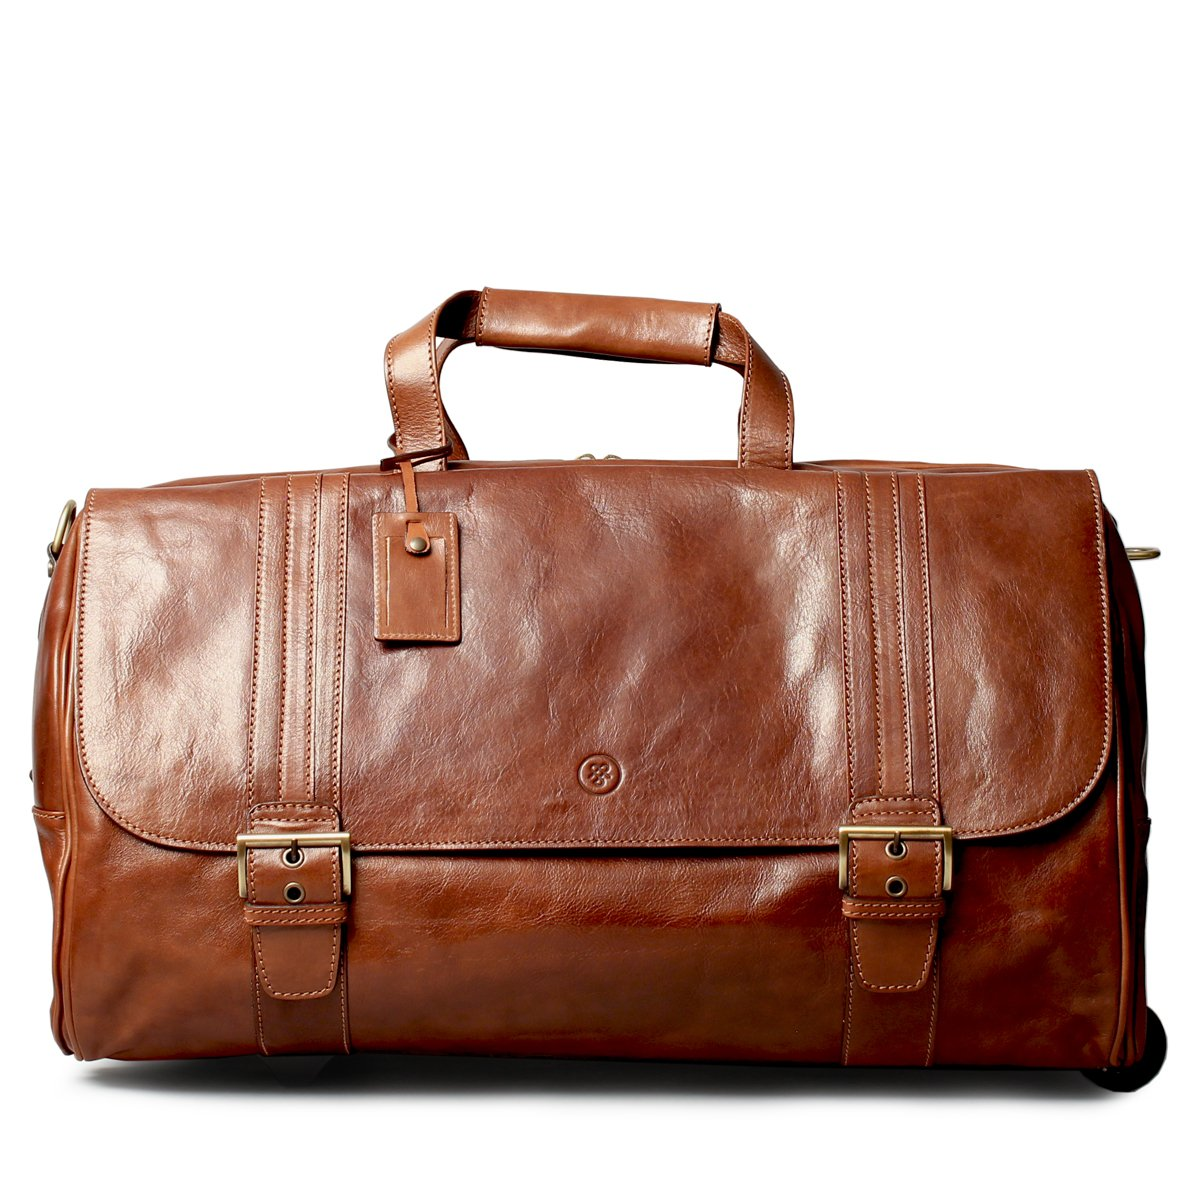 Maxwell Scott© Luxury Fine Leather Luggage (The DinoL) - Large